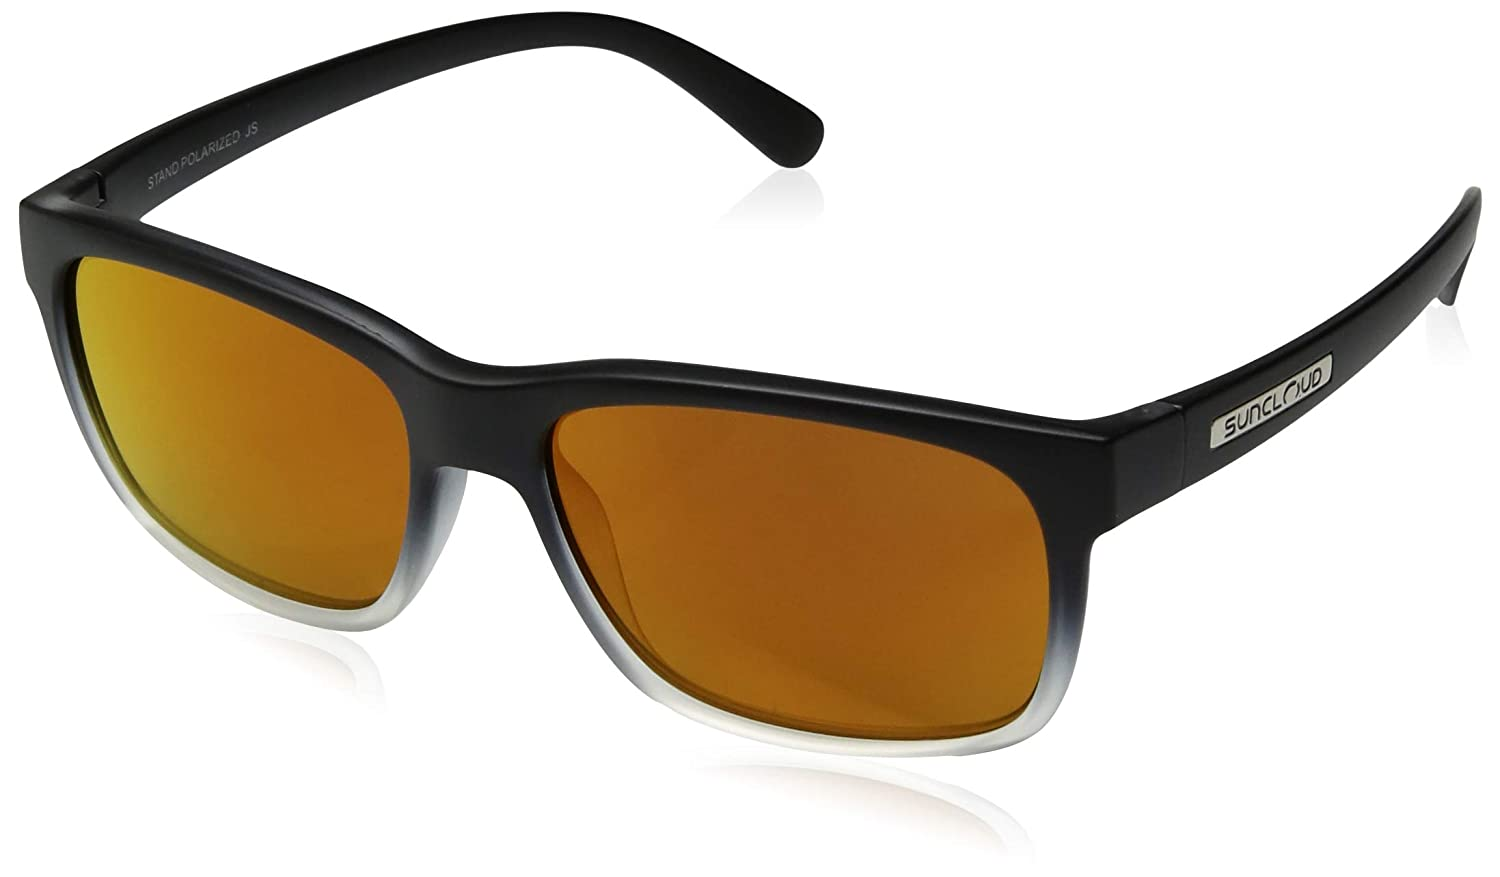 0967c37413f Amazon.com  Suncloud Stand Polarized Sunglasses